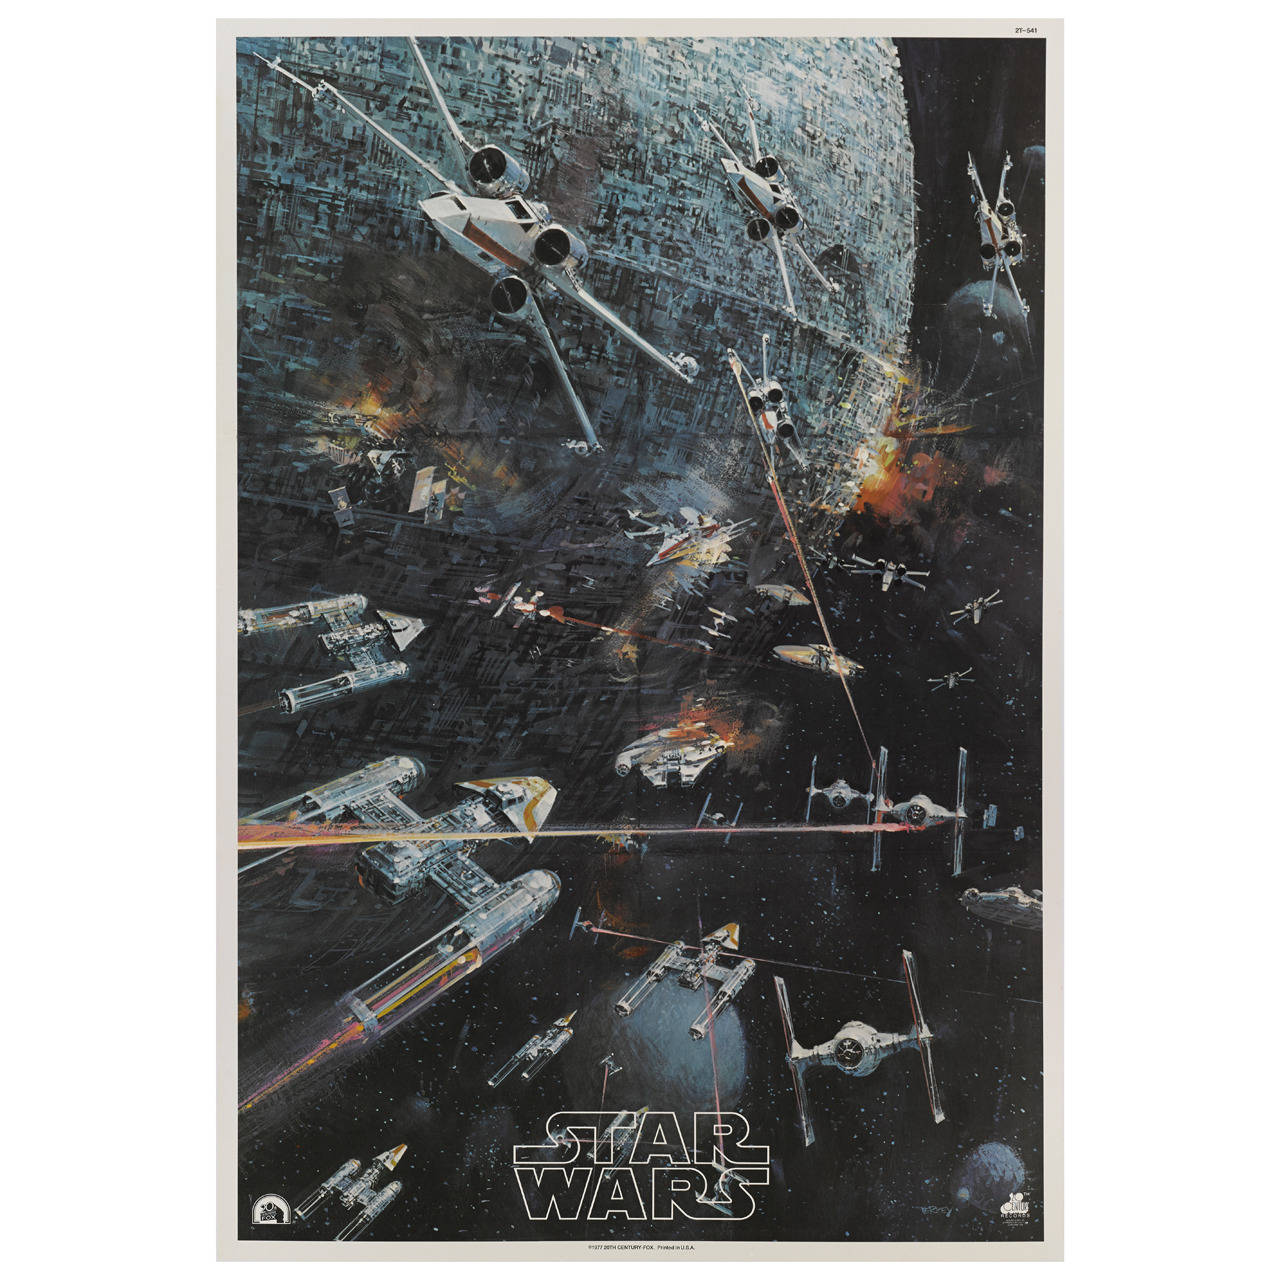 quotstar warsquot original us movie poster at 1stdibs